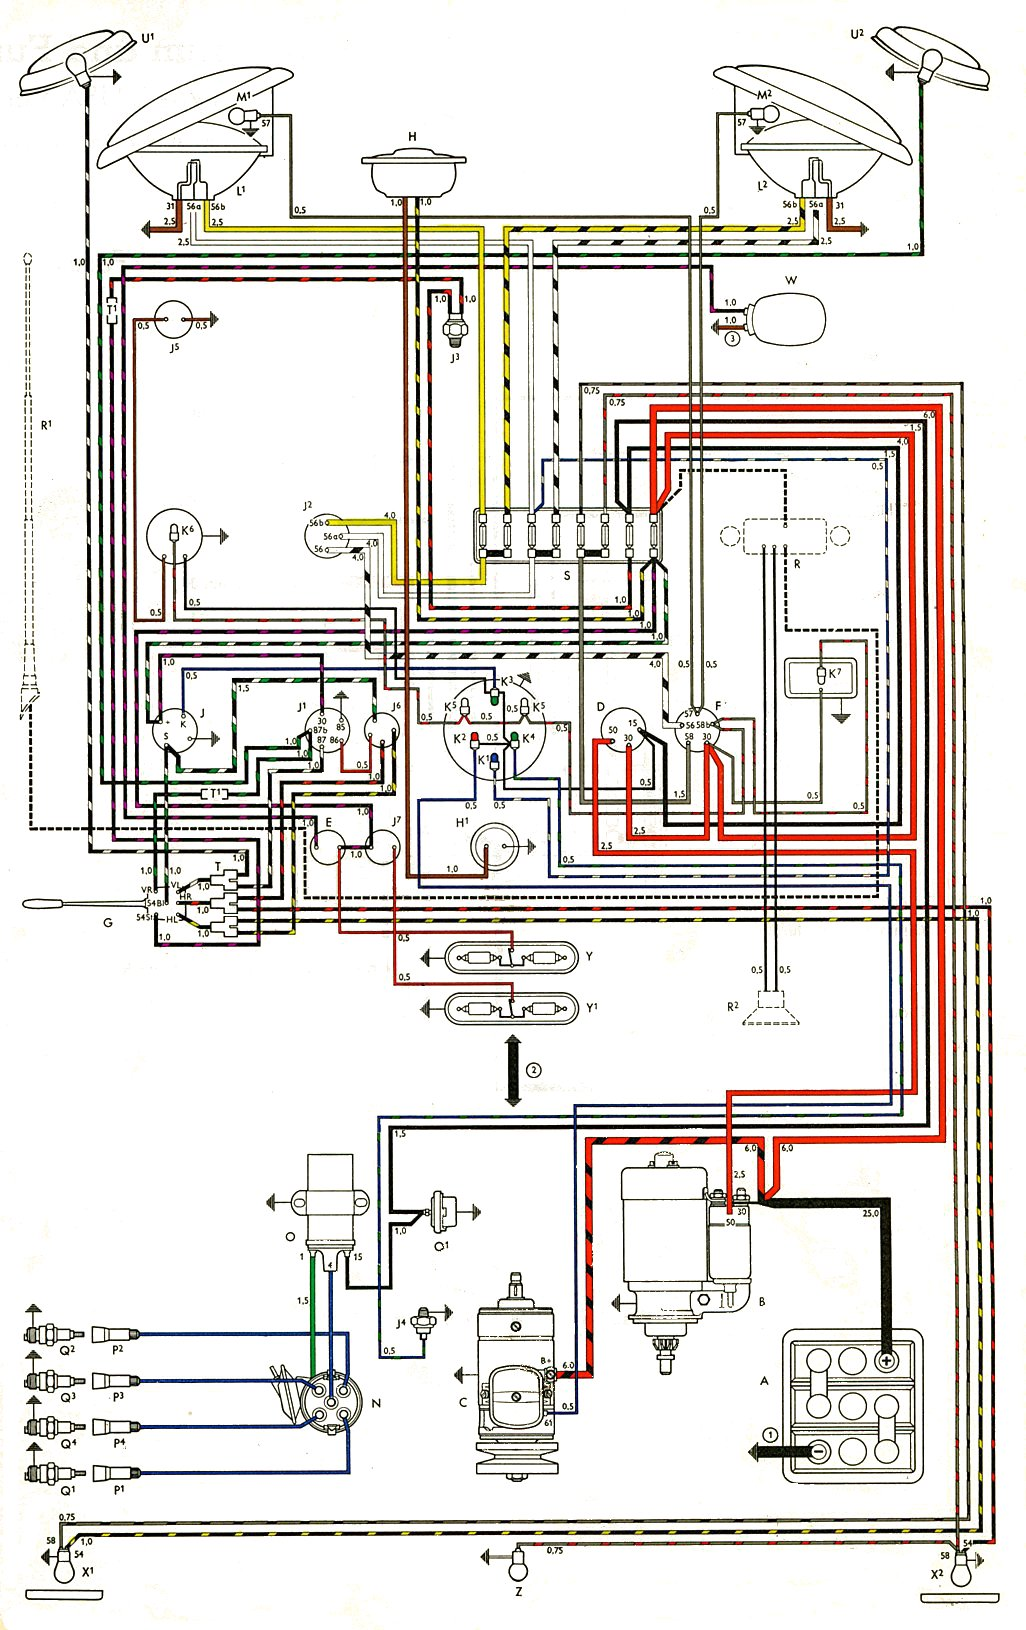 vw beetle generator wiring diagram thesamba gallery thesamba.com :: type 2 wiring diagrams 1975 vw beetle ignition wiring diagram